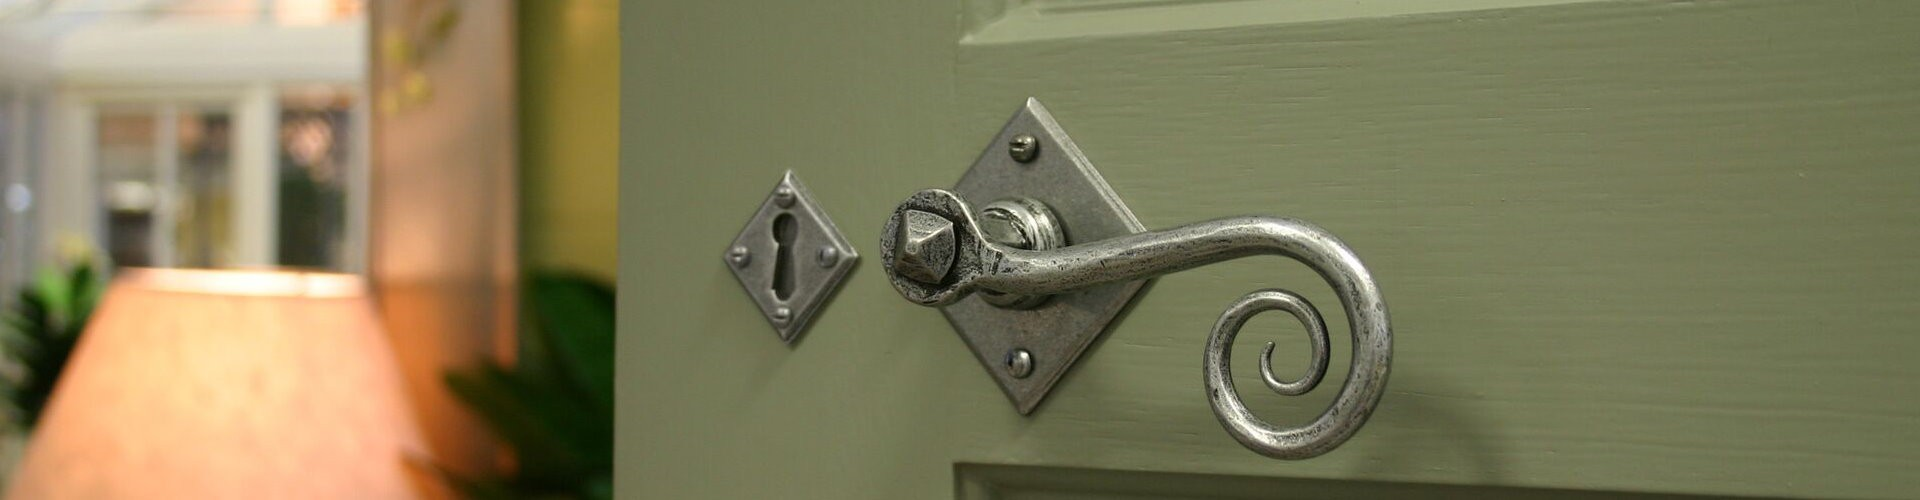 door hardware fittings